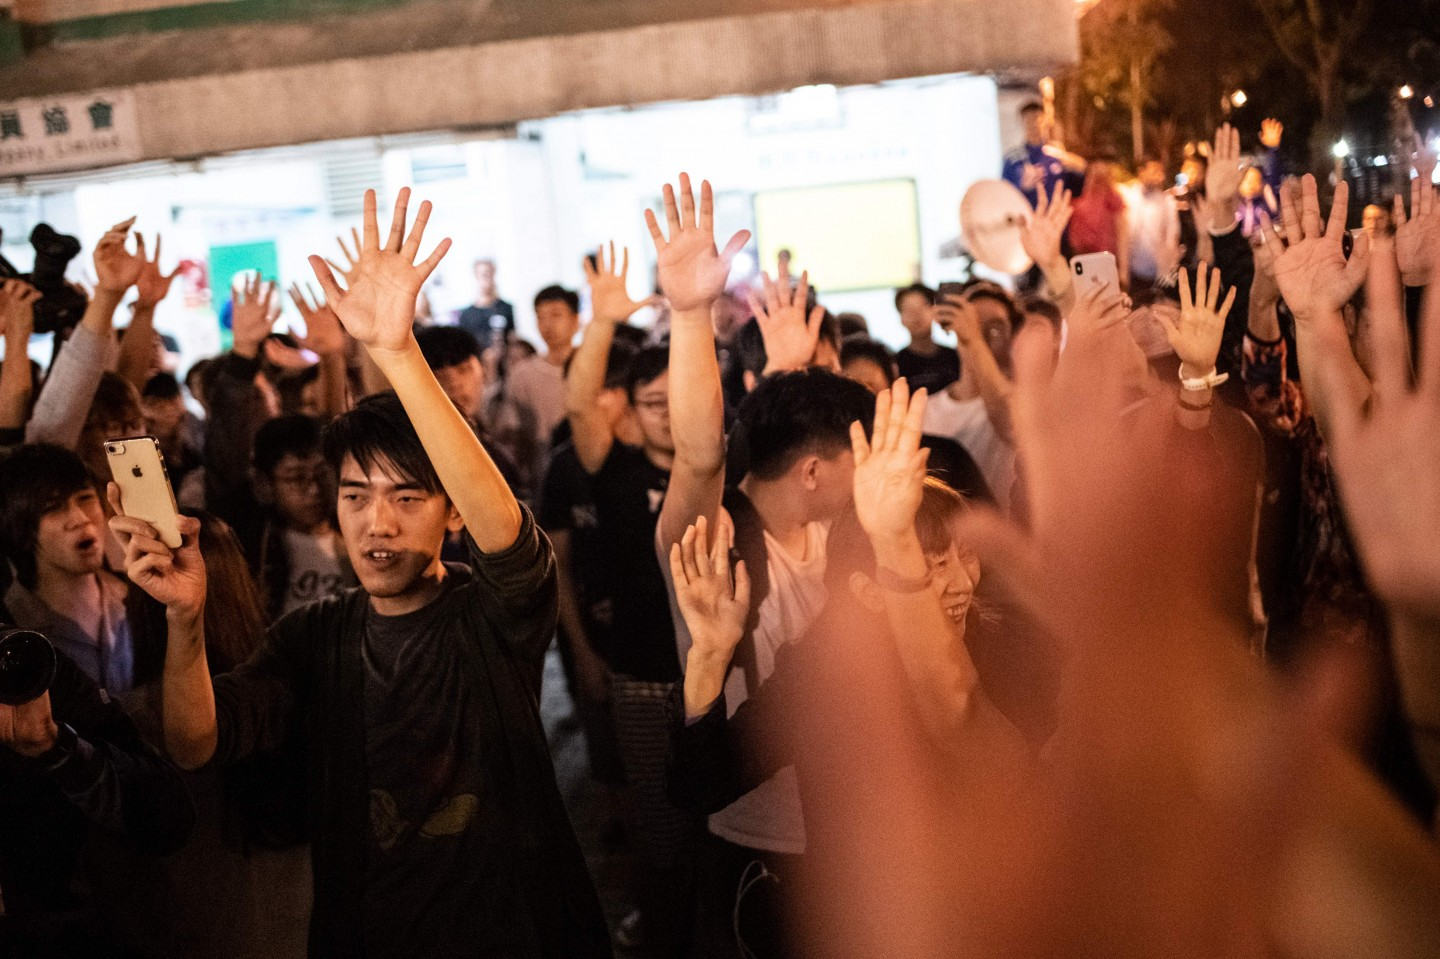 Pro-democracy supporters celebrate after pro-Beijing candidate Junius Ho lost a seat in the district council elections in Tuen Mun district of Hong Kong, early on November 25, 2019. - Hong Kong's voters turned out in record numbers for local council elections that the city's pro-democracy movement hopes will add pressure on the Beijing-backed government to heed their demands after months of violent protest. Lengthy queues snaked out of polling stations across the territory in the election for 18 district councils, where high turnout is expected to benefit democratic forces. (Photo by Philip FONG / AFP)